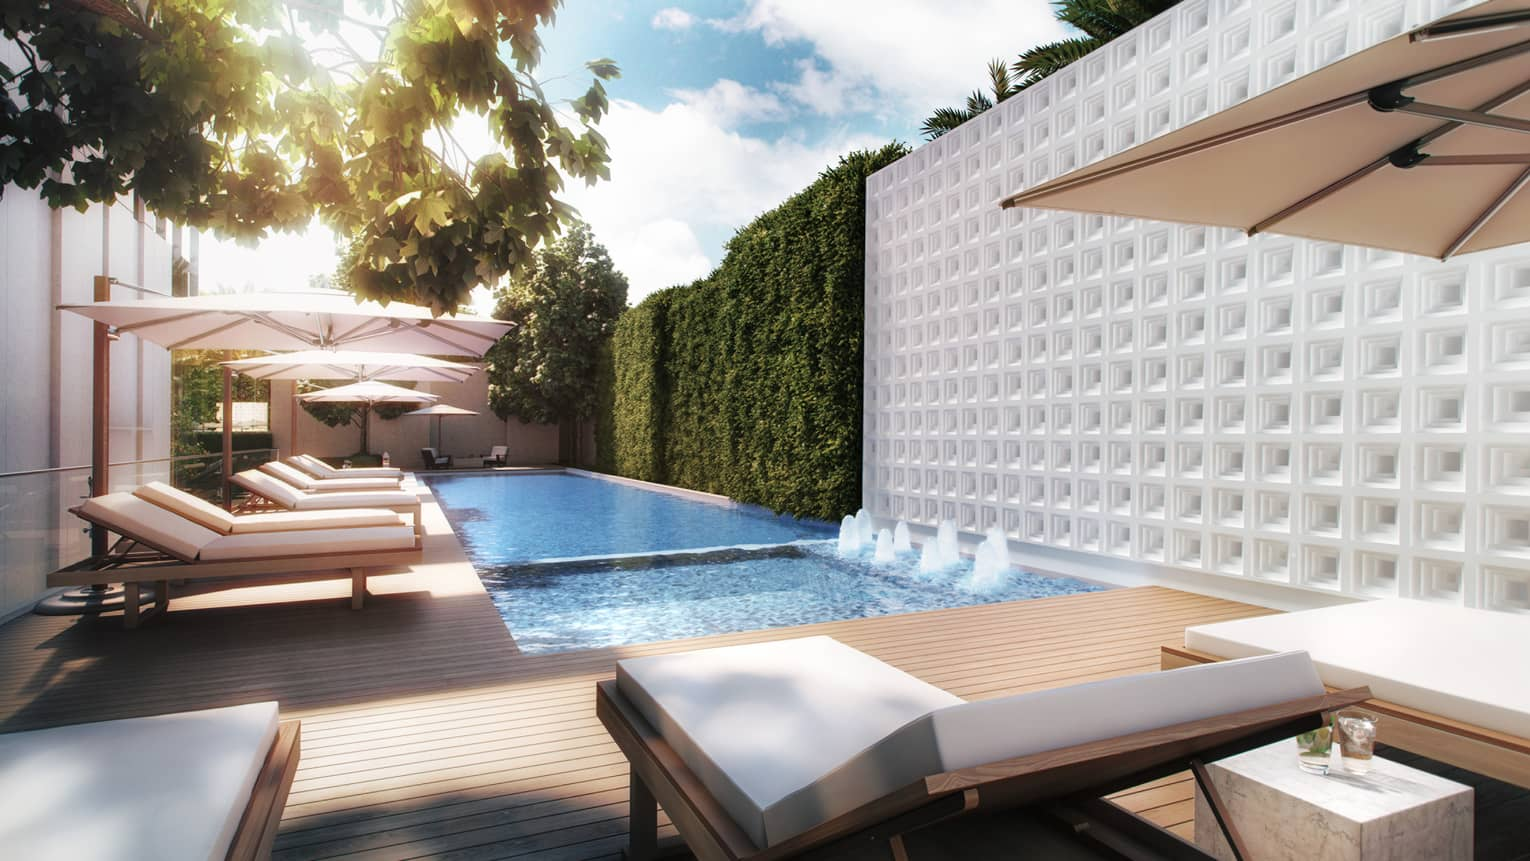 Features of the Expertise private luxury residences